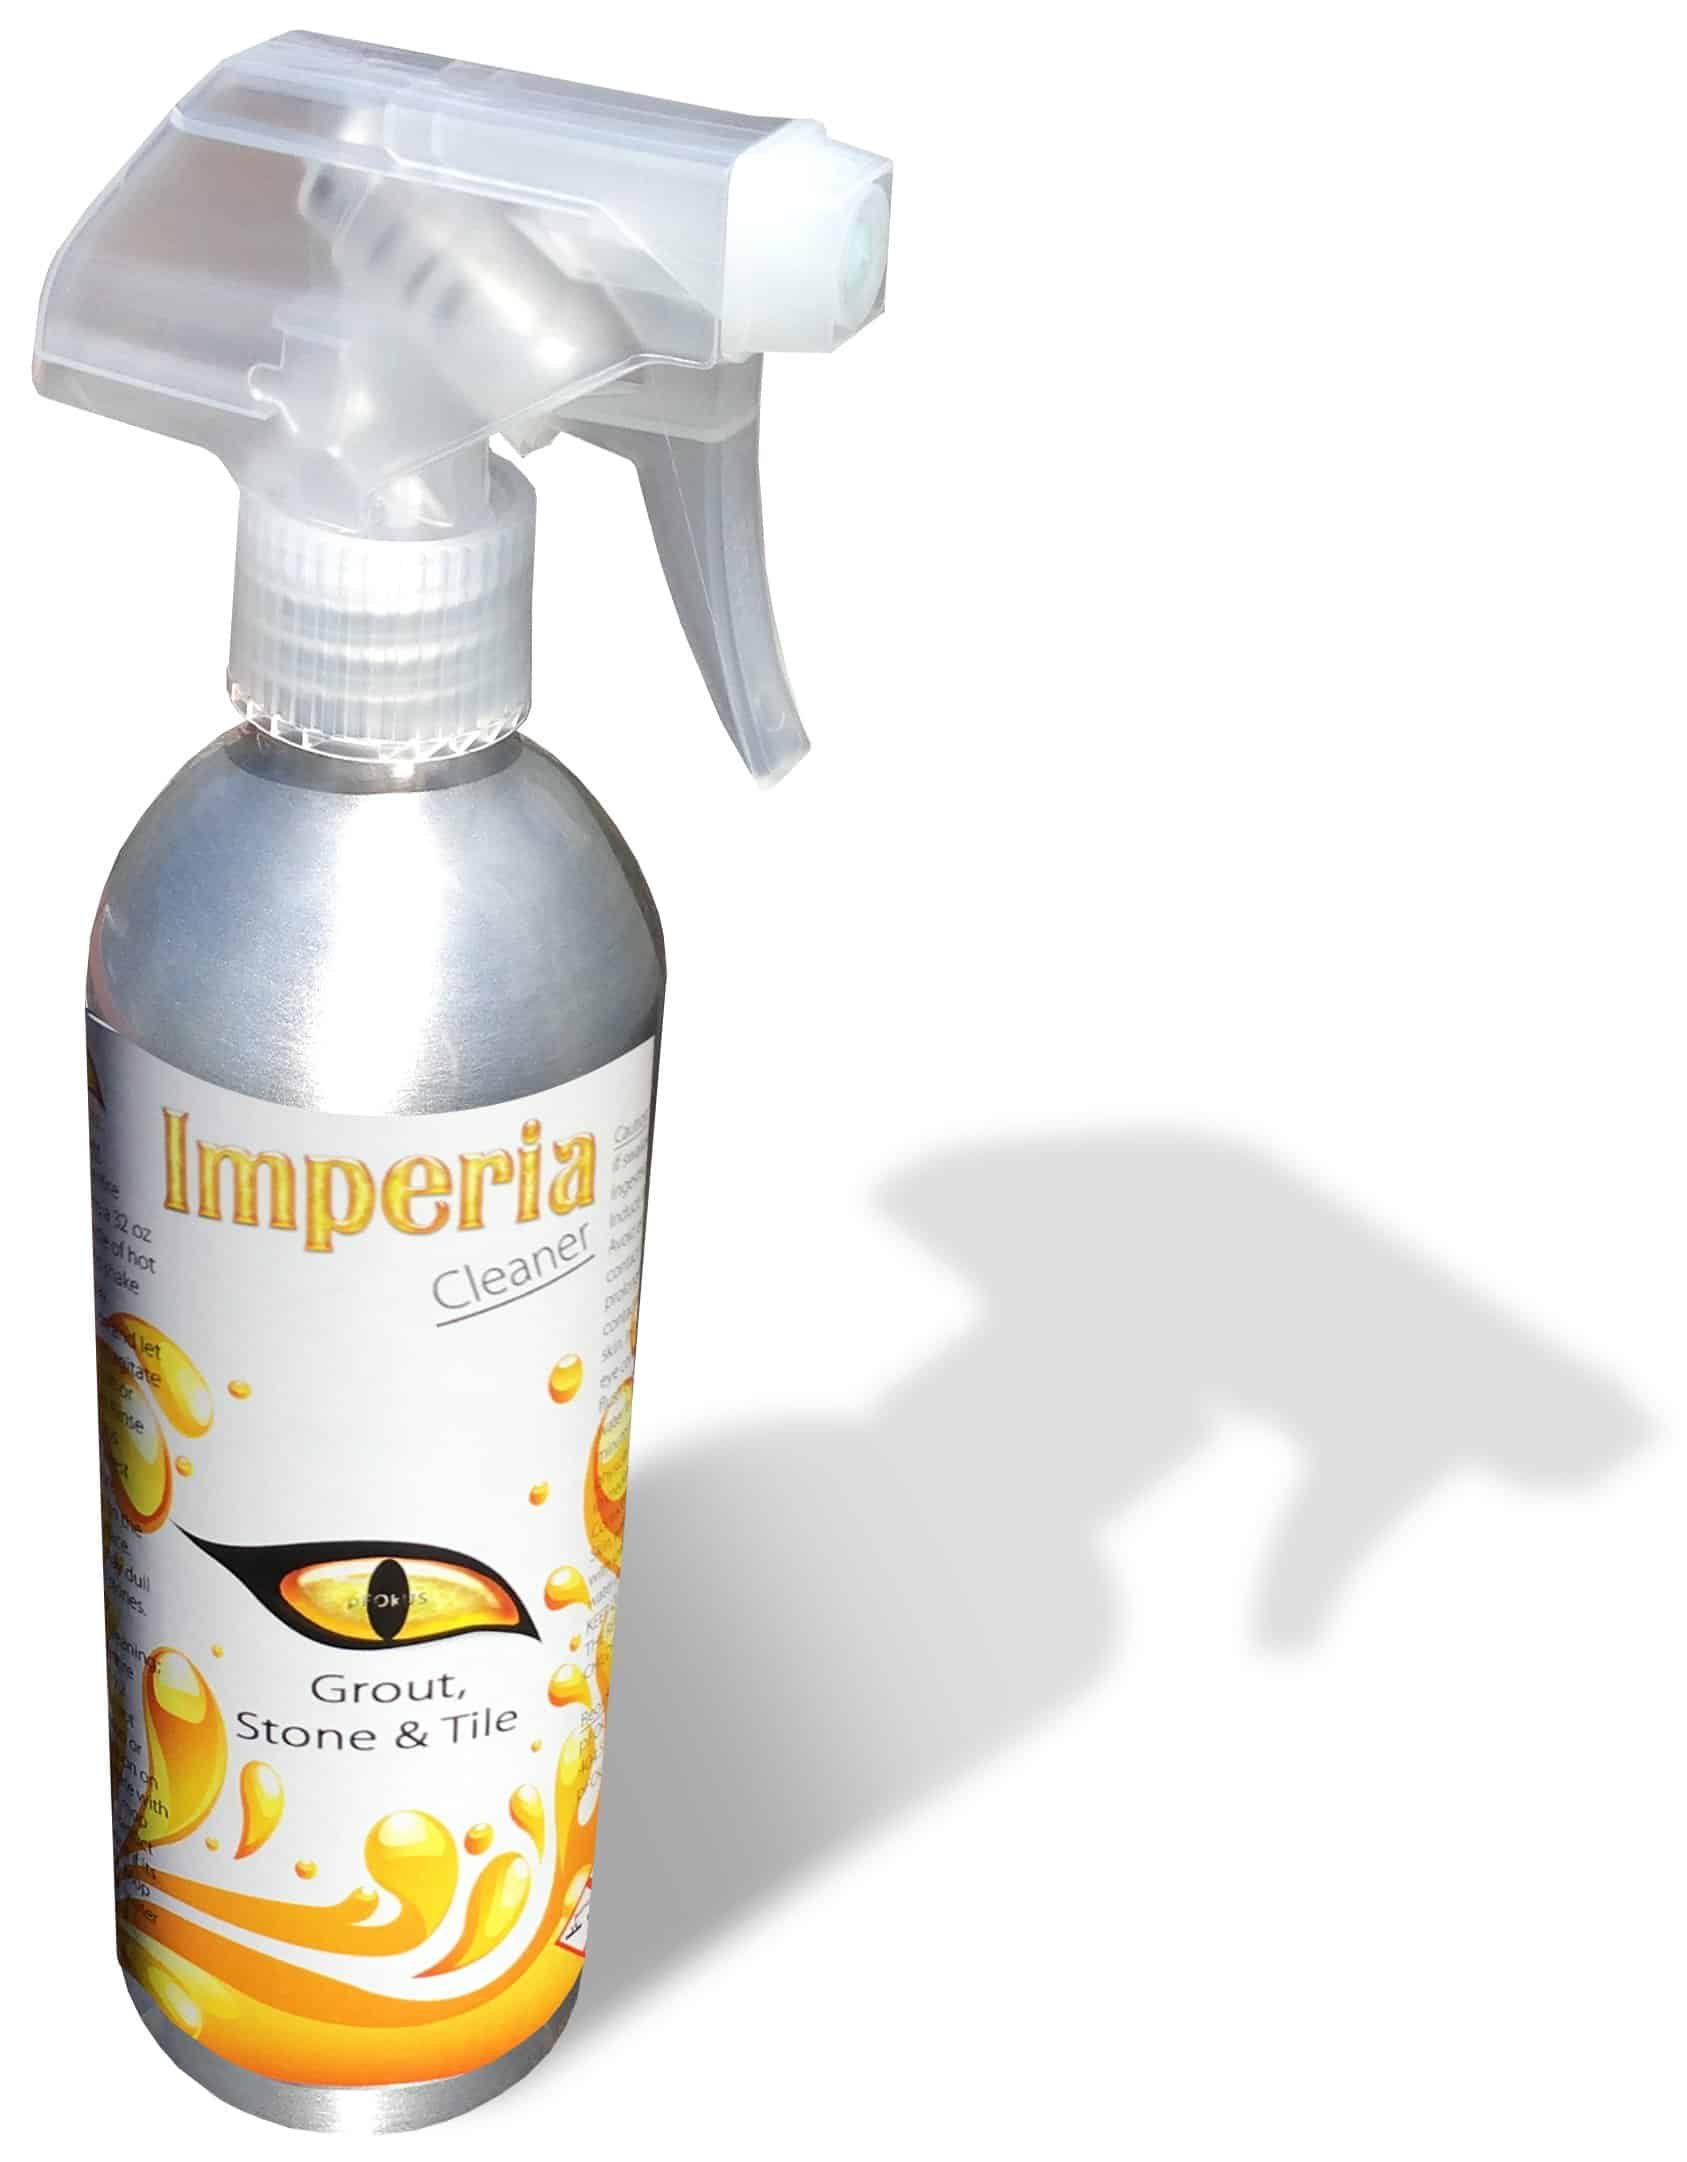 Imperia Grout Cleaner Deep Commerical pFOkUS